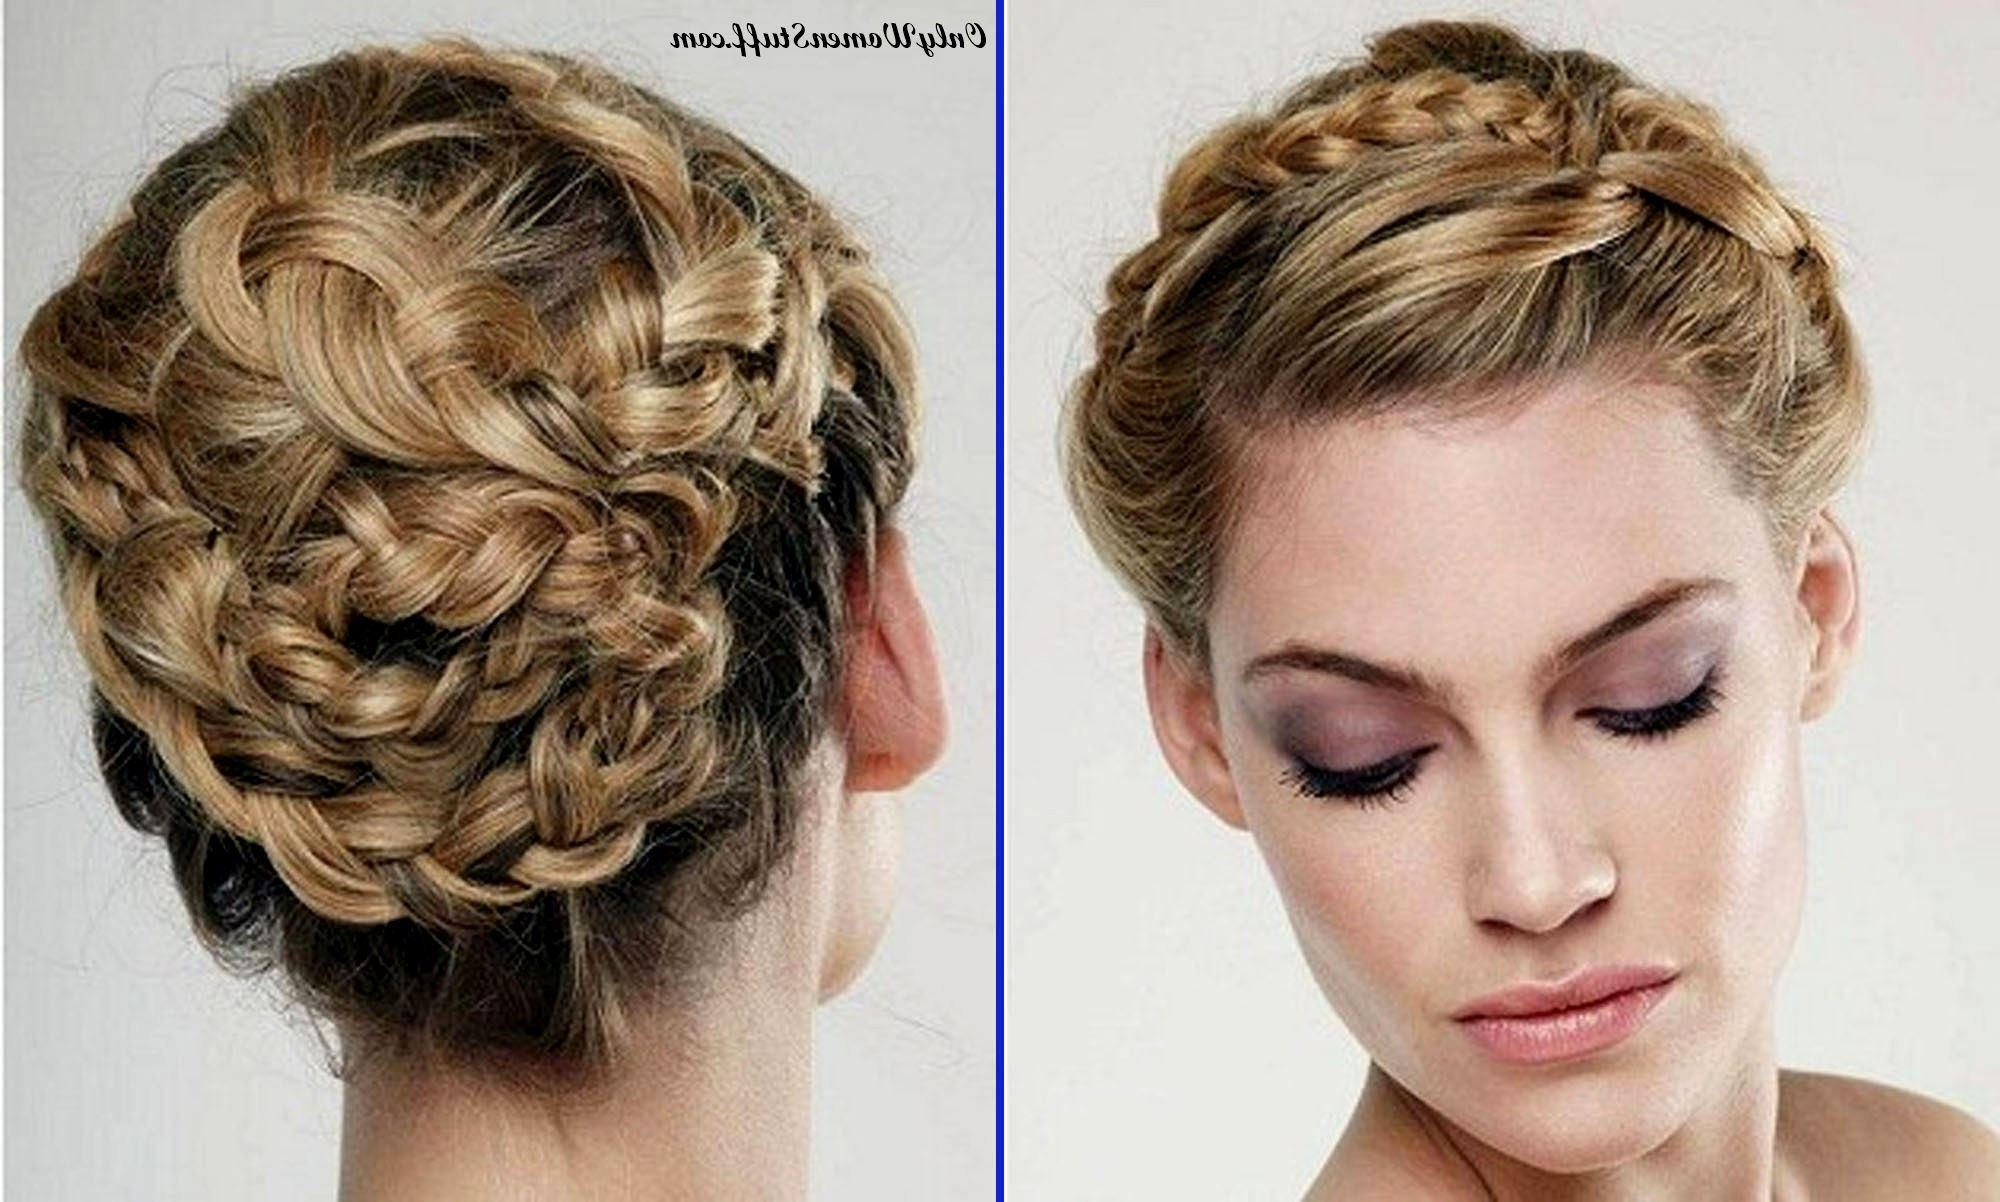 50+ Easy Prom Hairstyles & Updos Ideas (Stepstep) With Regard To Cute Updo Hairstyles For Long Hair (View 3 of 15)